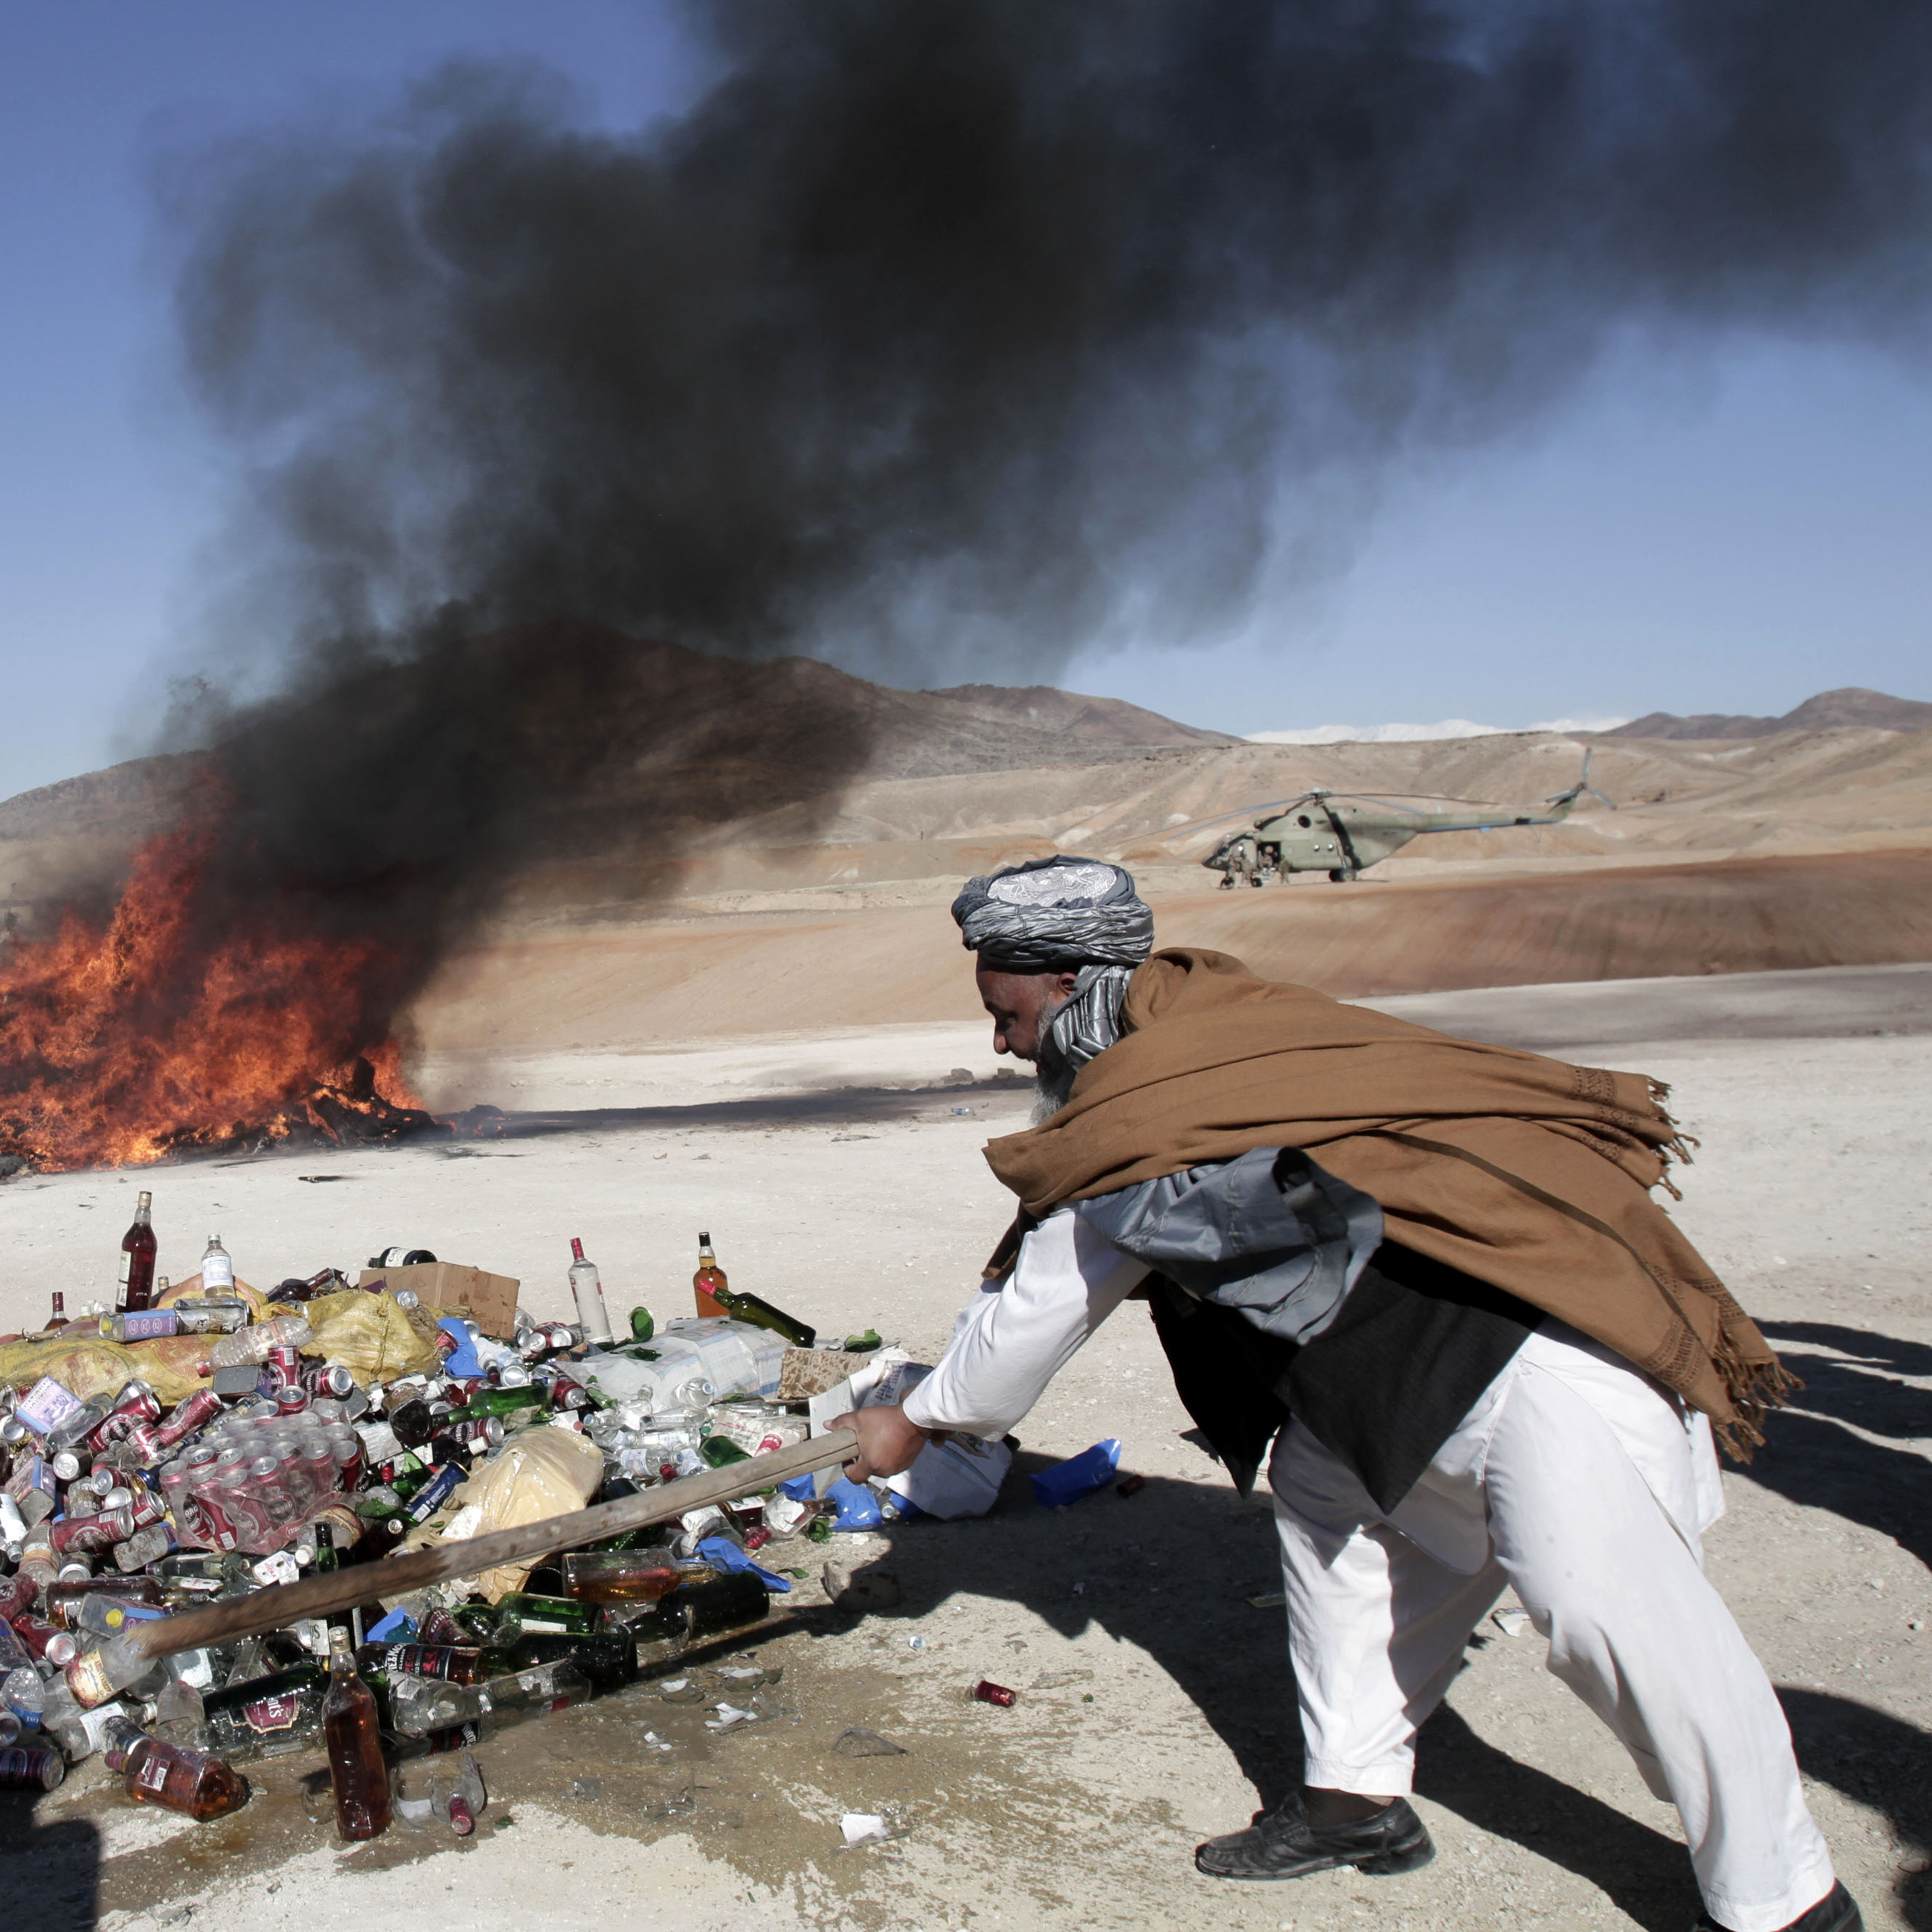 An Afghan man breaks a bottle of alcohol in Jalalabad, east of Kabul, Afghanistan, on Dec. 19, 2012. Authorities destroy confiscated drugs and alcohol in Afghanistan.